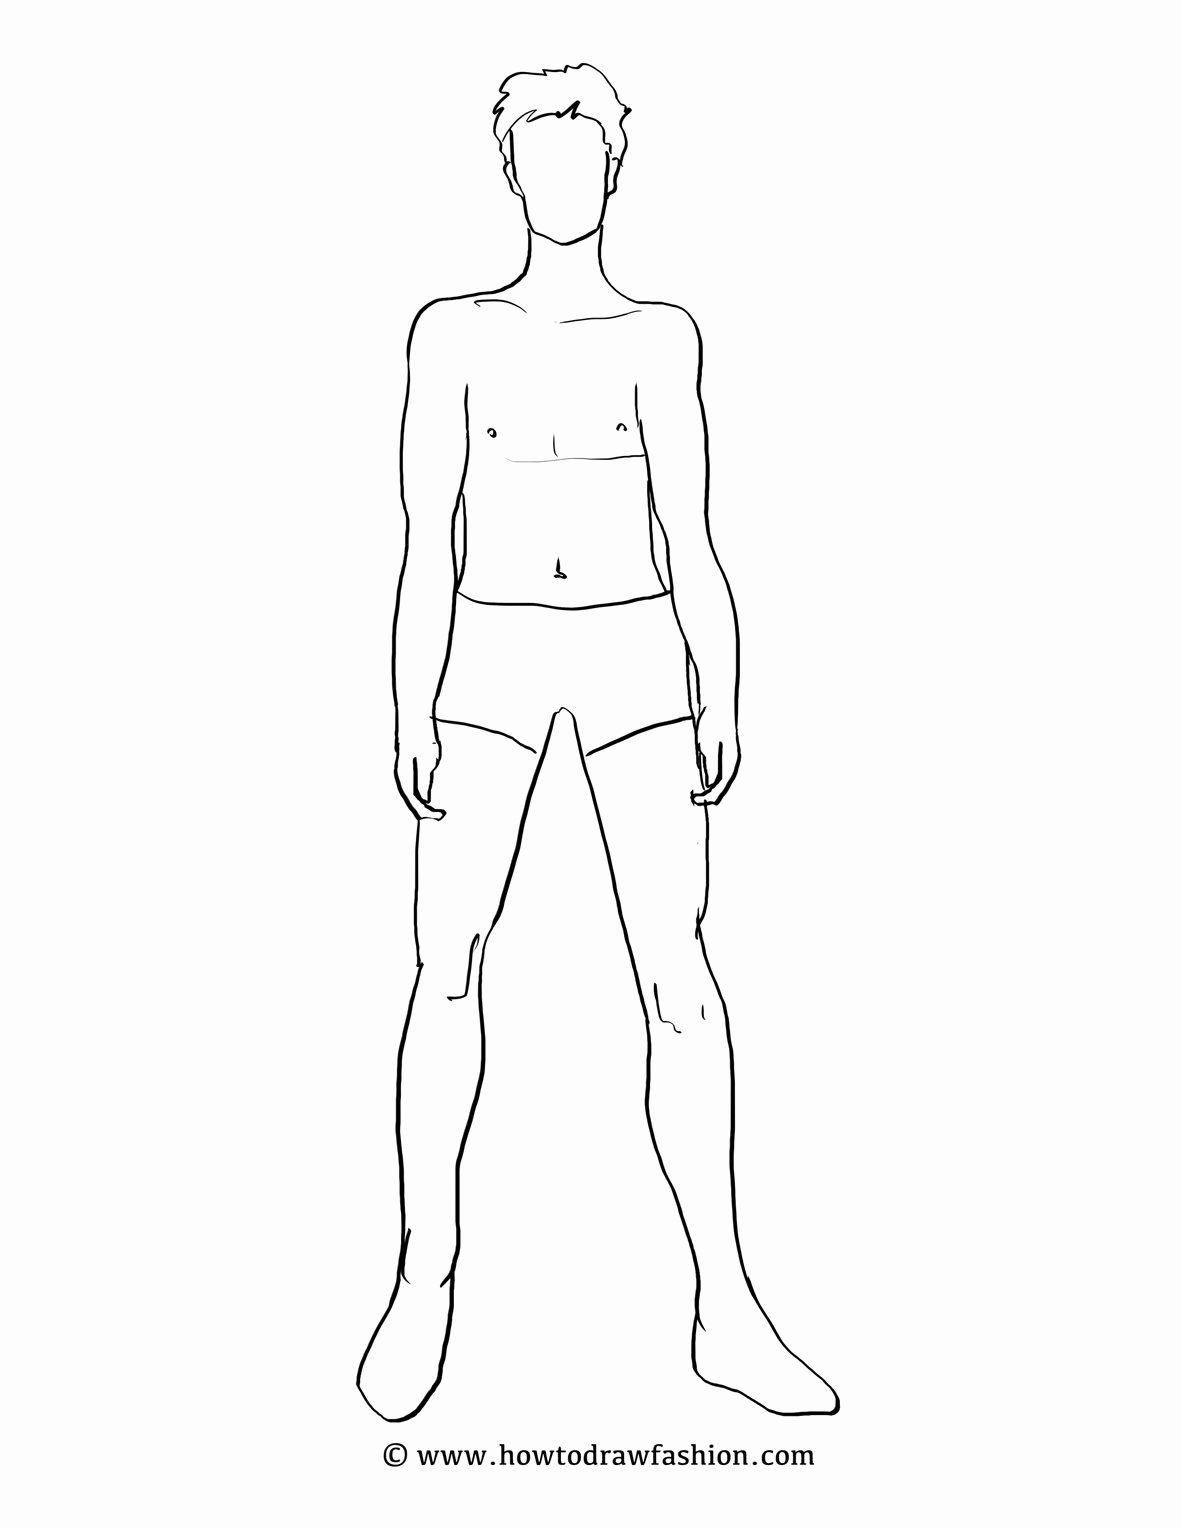 Blank Model Sketch Template Best Of How to Draw Fashion Fashion Templates Men